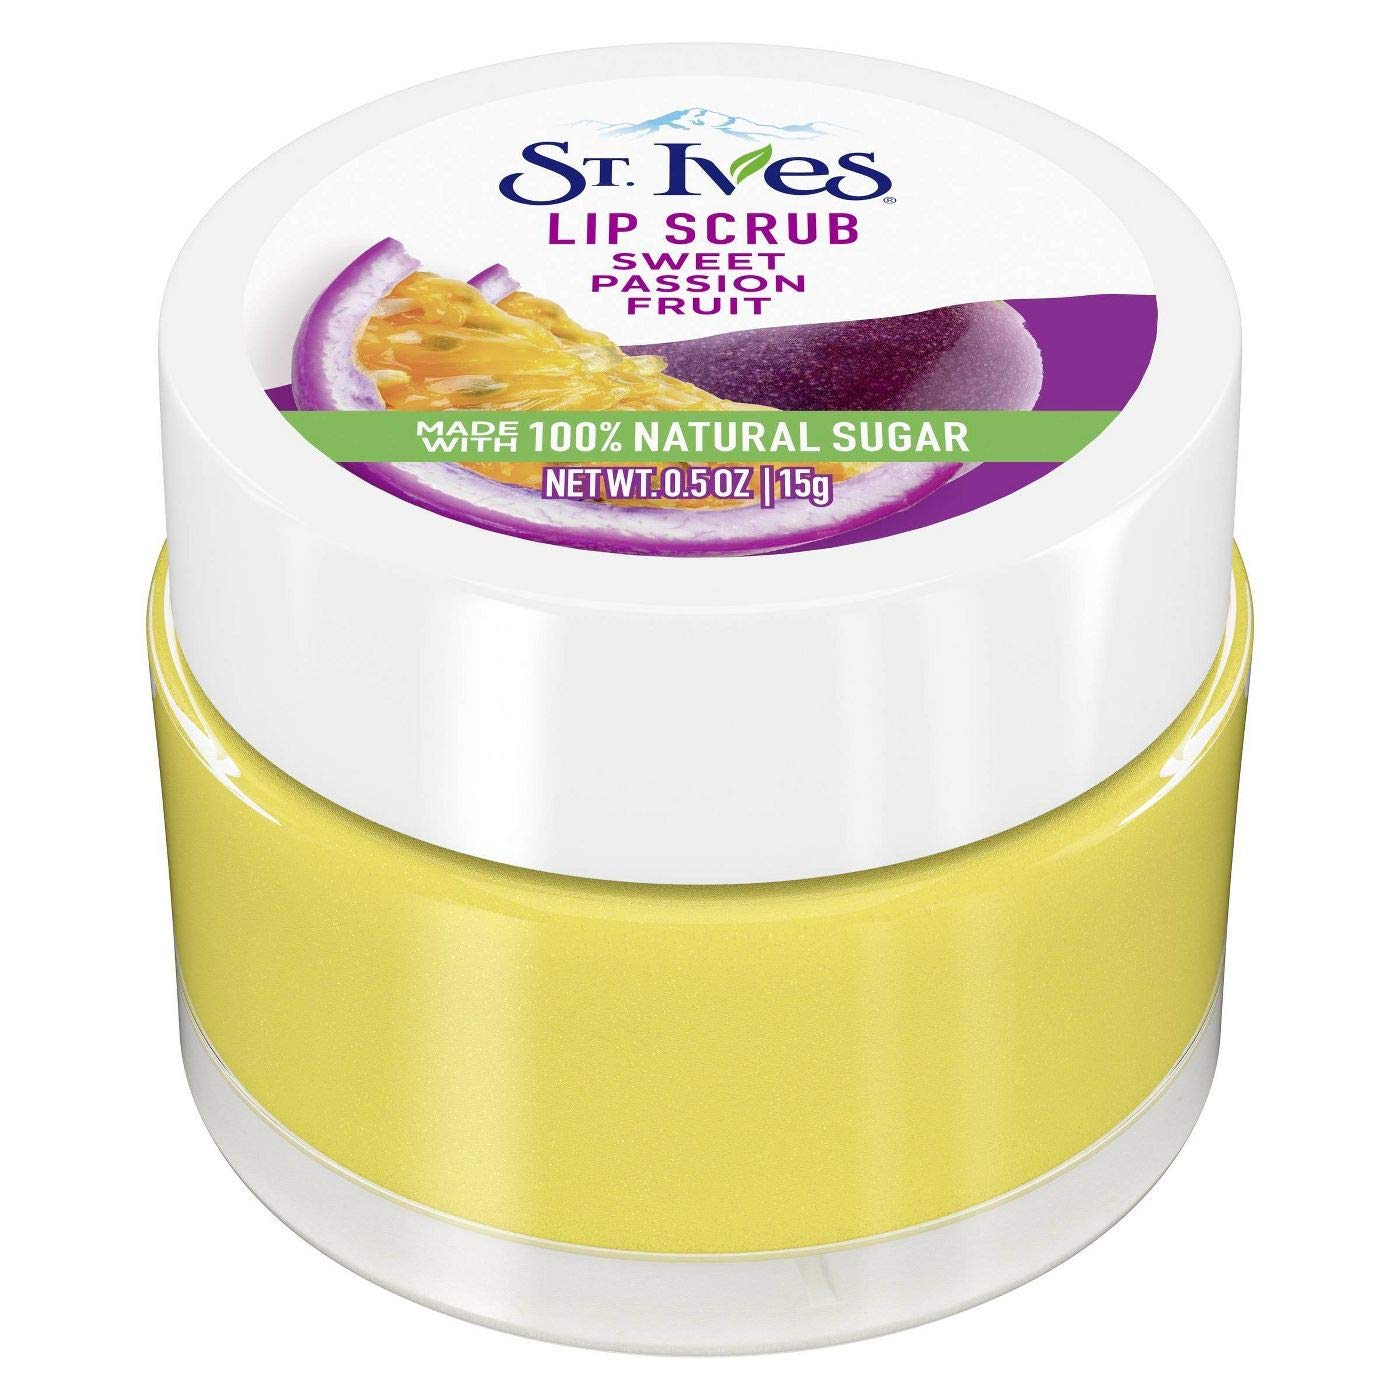 St. Ives Sweet Passionfruit oz Lip Scrub Challenge the lowest price of Japan 0.5 excellence